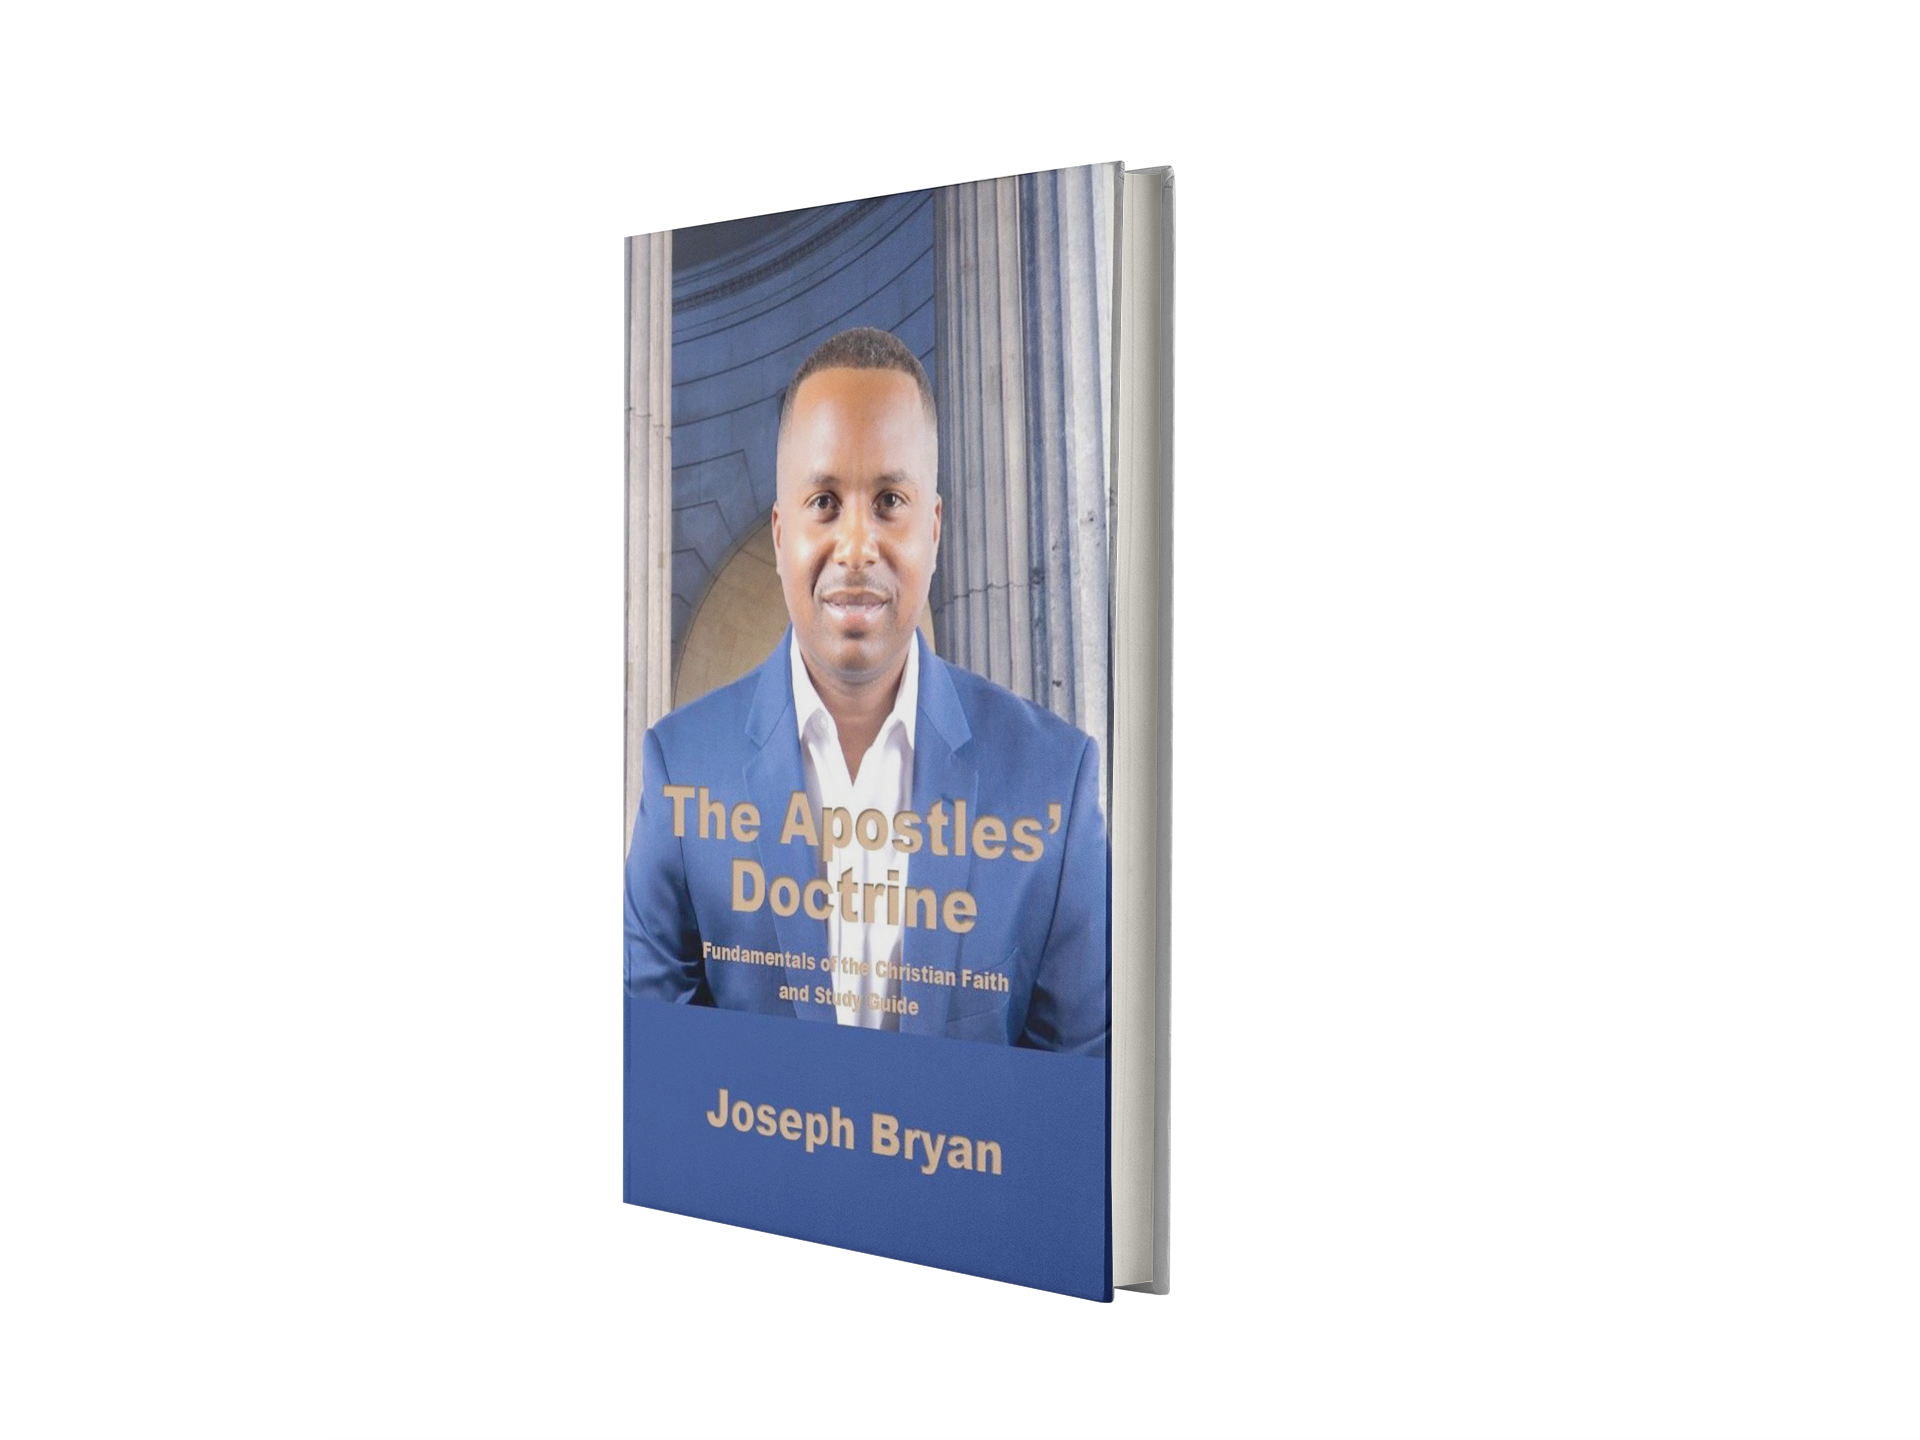 The Apostles' Doctrine by Joseph D. Bryan